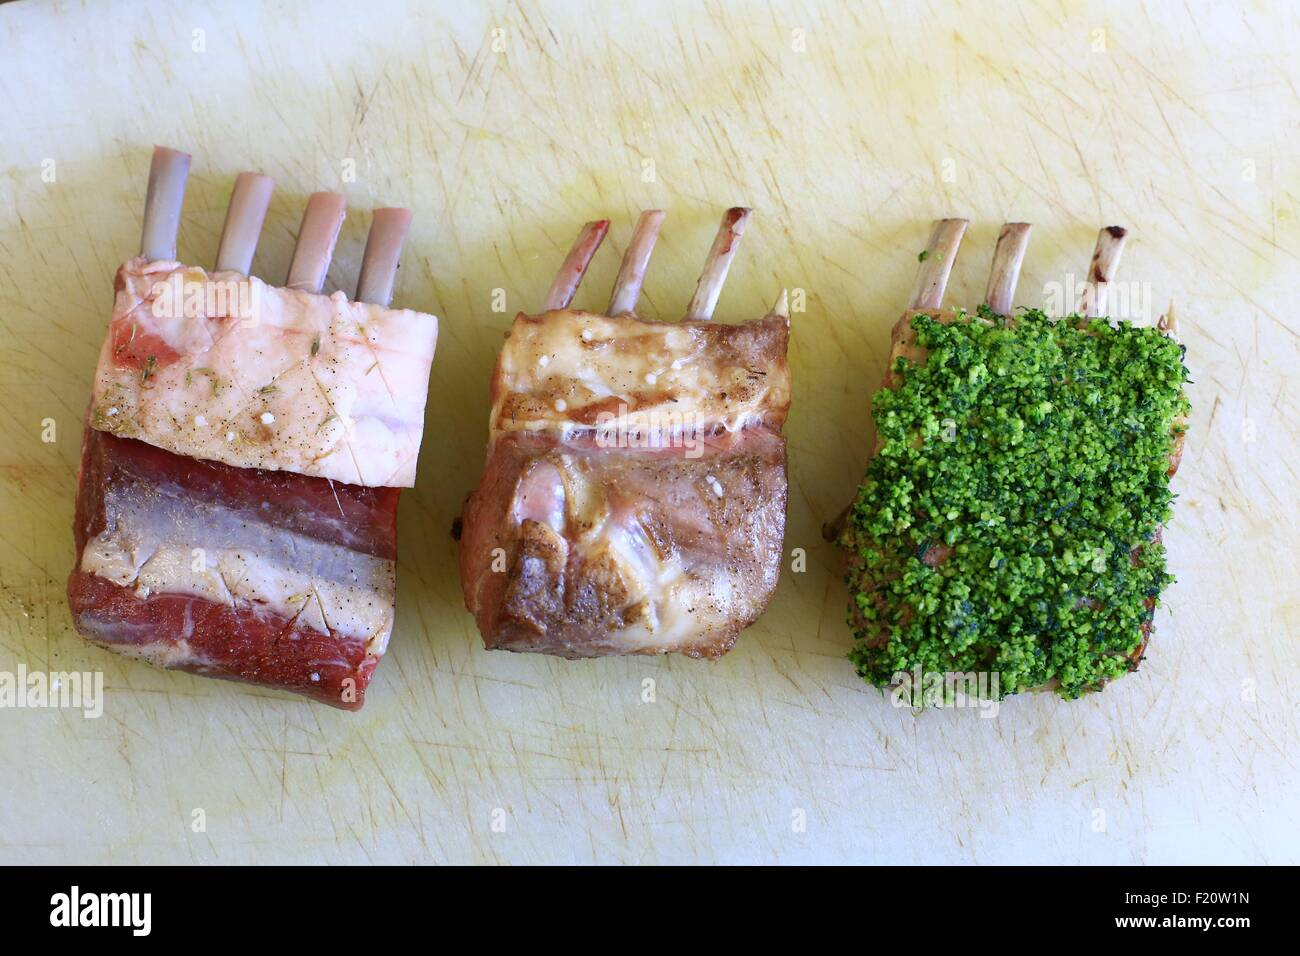 France, Vaucluse, Monieux, restaurant Lavenders, Chief Emmanuel Lopez, lamb Sault countries with herbs - Stock Image